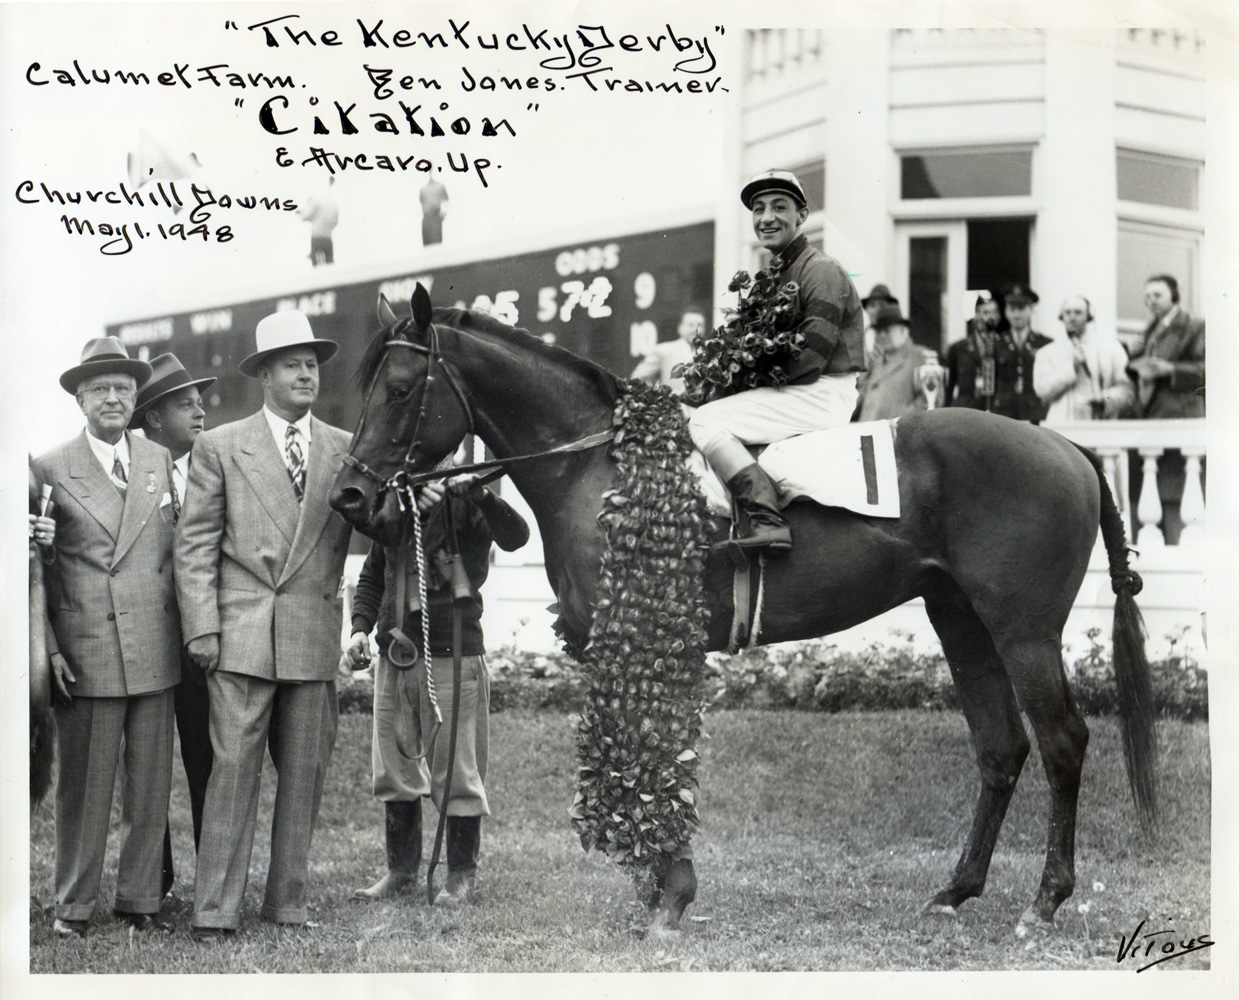 Ben Jones in the winner's circle for the 1948 Kentucky Derby, won by Citation. (His son, Jimmy Jones, would become the trainer of record for the last two legs of the Triple Crown) (Jerry Vitous/Museum Collection)